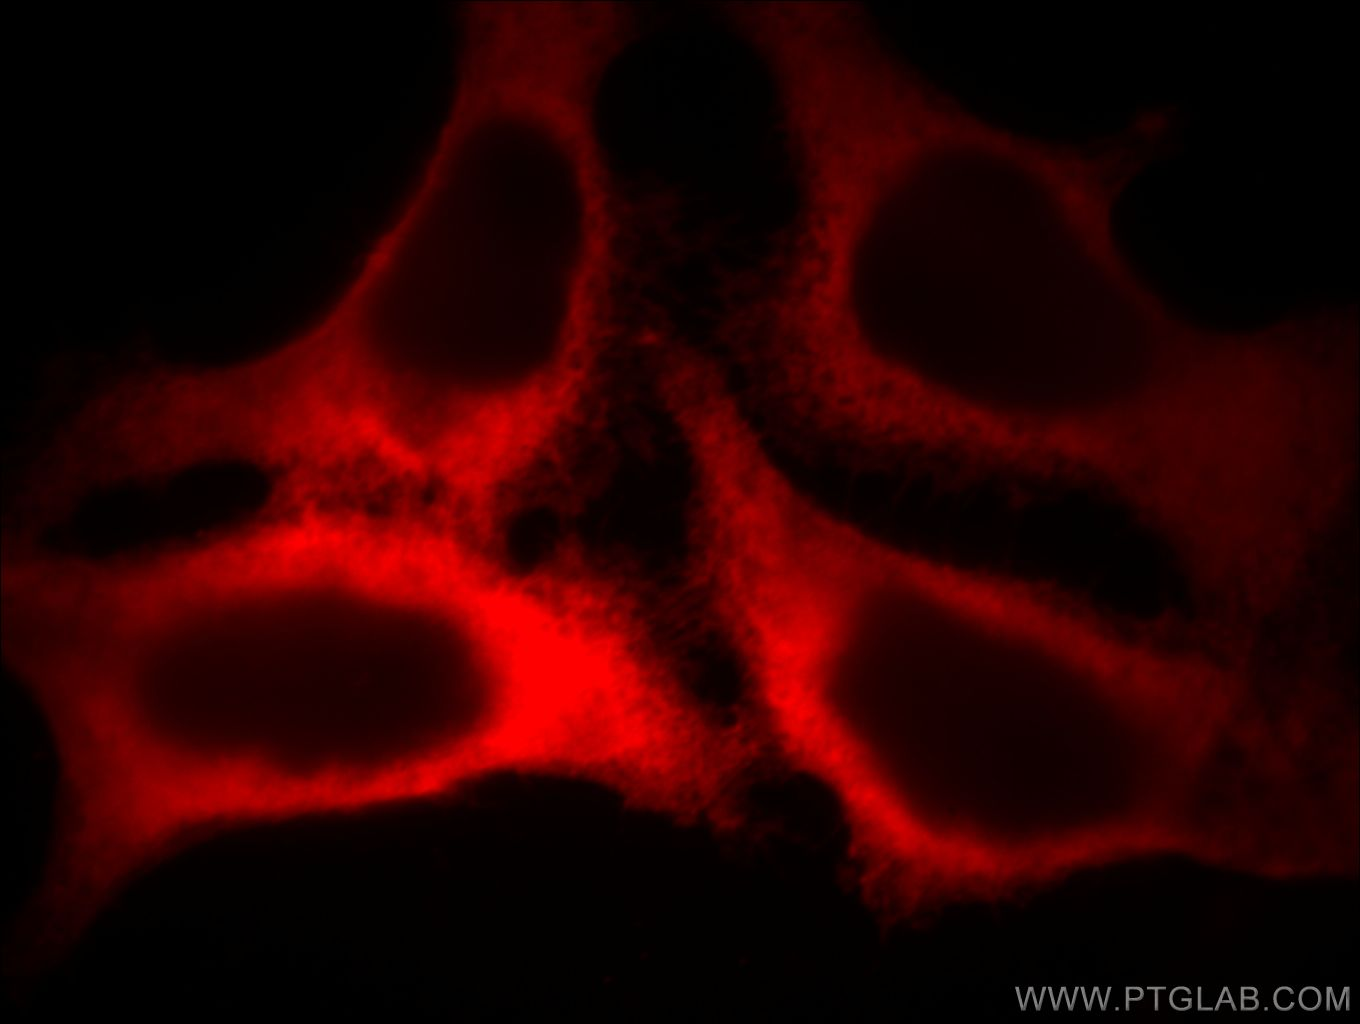 ACTB Immunofluorescence IF 60008-2-Ig ACTB Antibody PS1TP5BP1